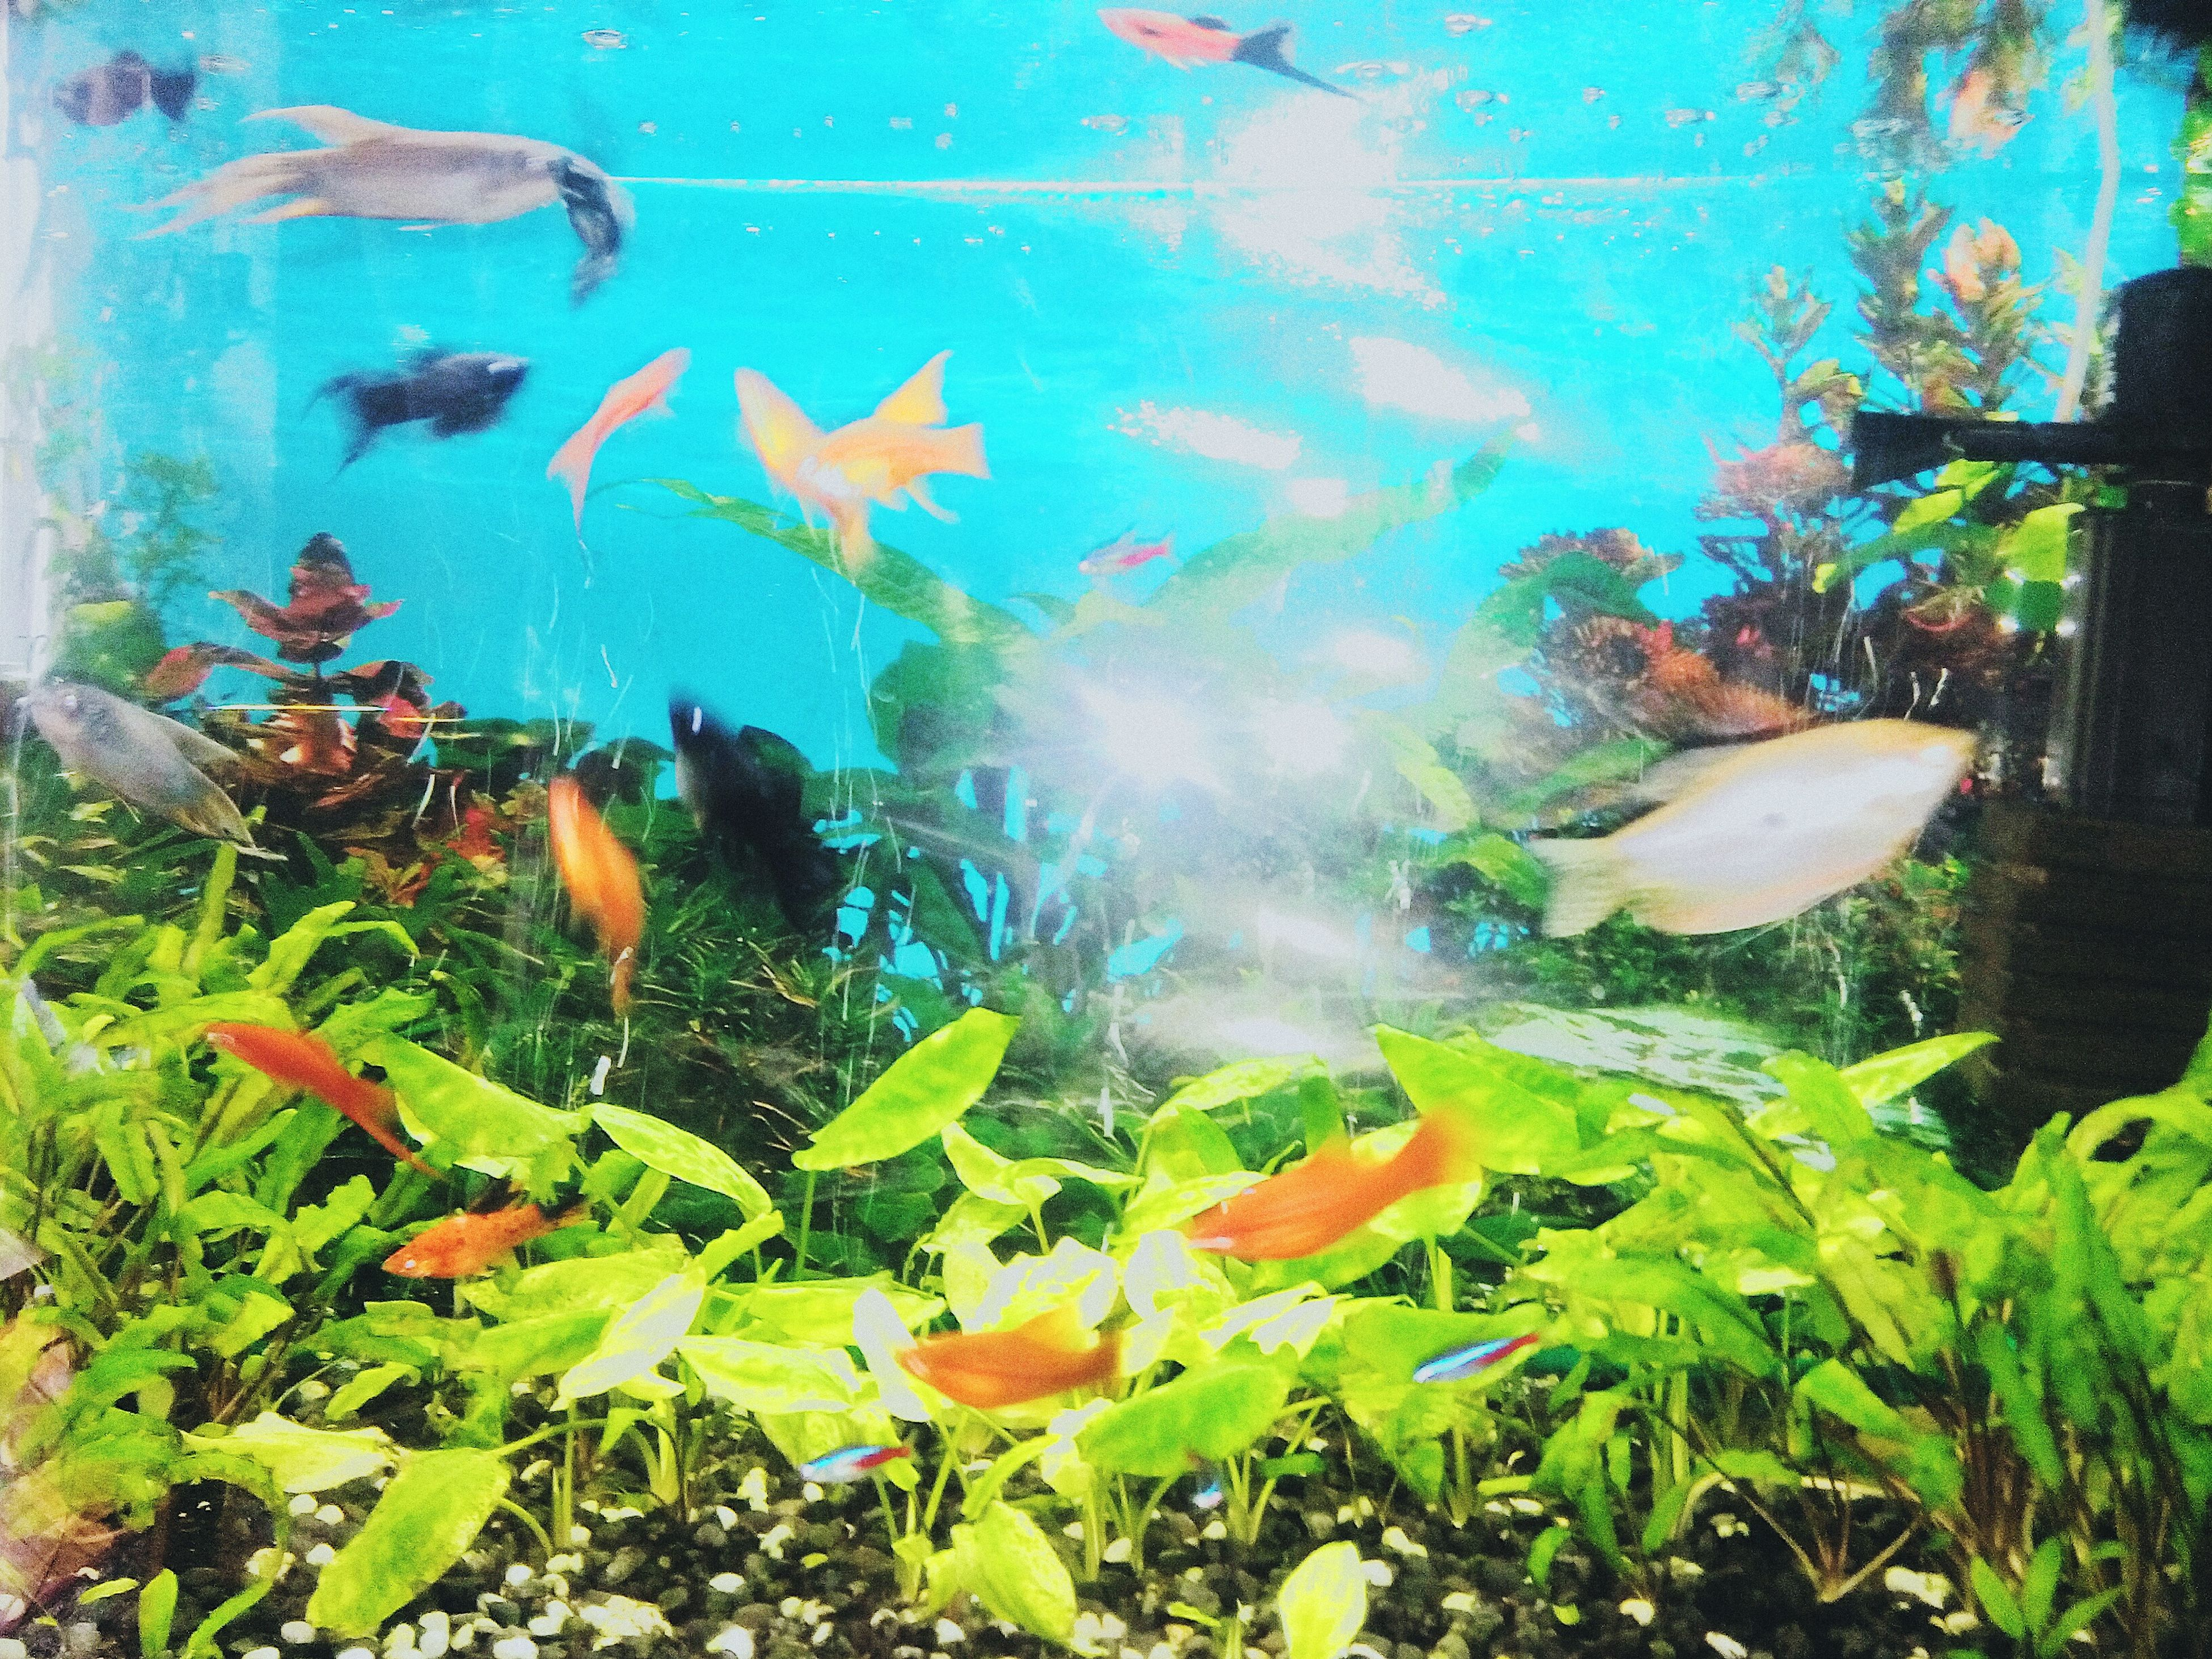 water, plant, nature, multi colored, leaf, close-up, sunlight, pond, orange color, beauty in nature, underwater, growth, transparent, no people, outdoors, day, green color, grass, fish, blue